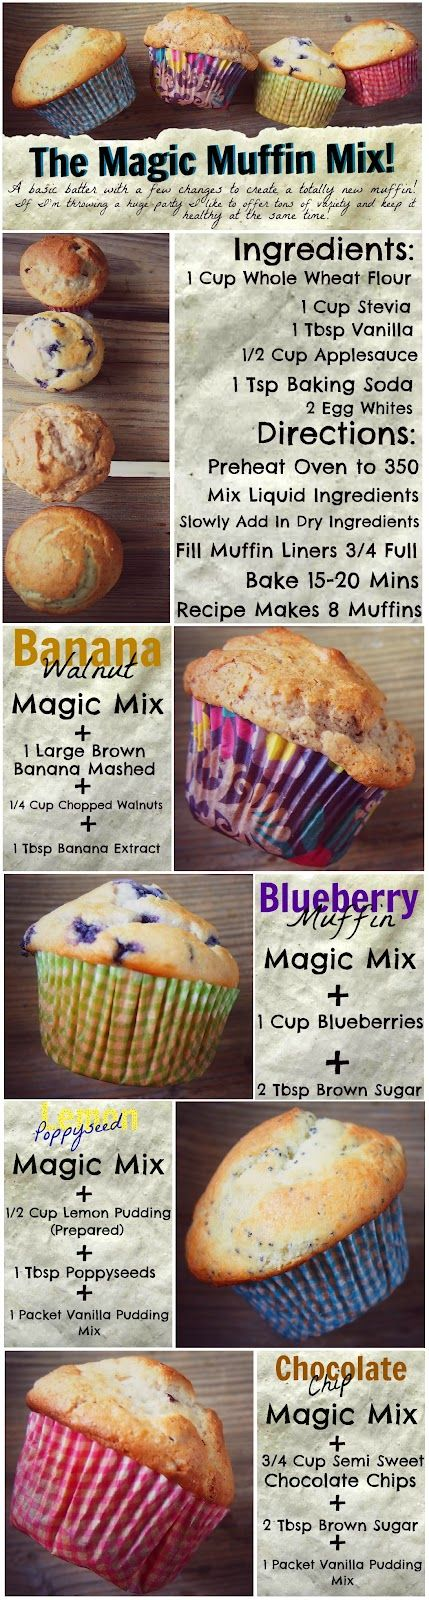 Magic Muffin Mix: Cake, Muffin Recipes, Sweet, Magic Muffins, Magic Muffin Mix, Breakfast, Healthy Muffins, Dessert